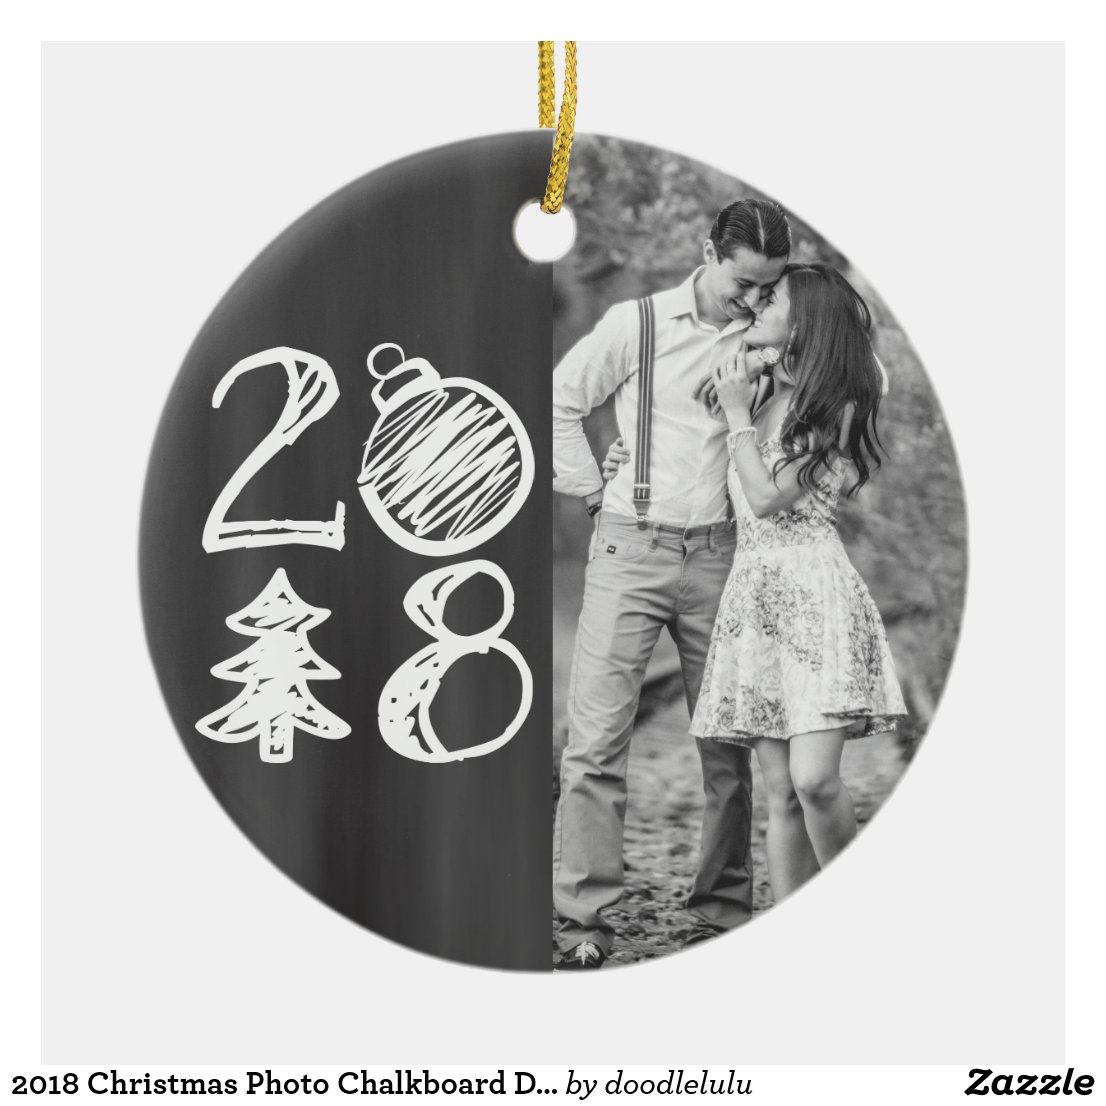 2018 Christmas Photo Chalkboard Doodle Ceramic Ornament